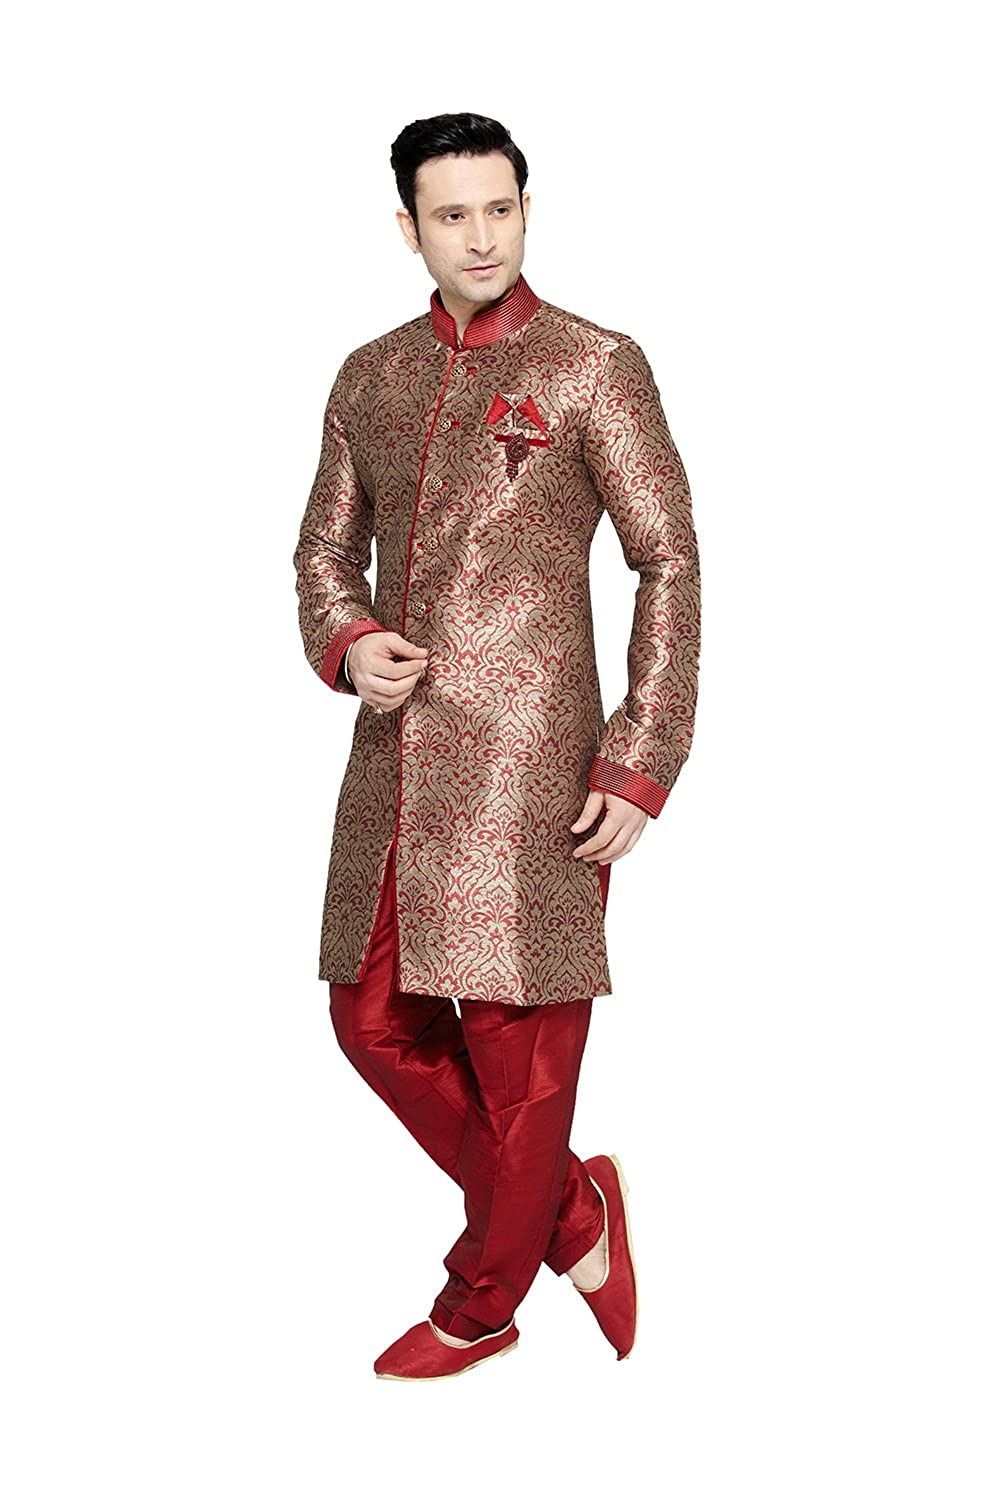 Indian Kurta pajama set for Men Wedding Festival Partywear in Red Brocade Art Silk ICW1246-9-44